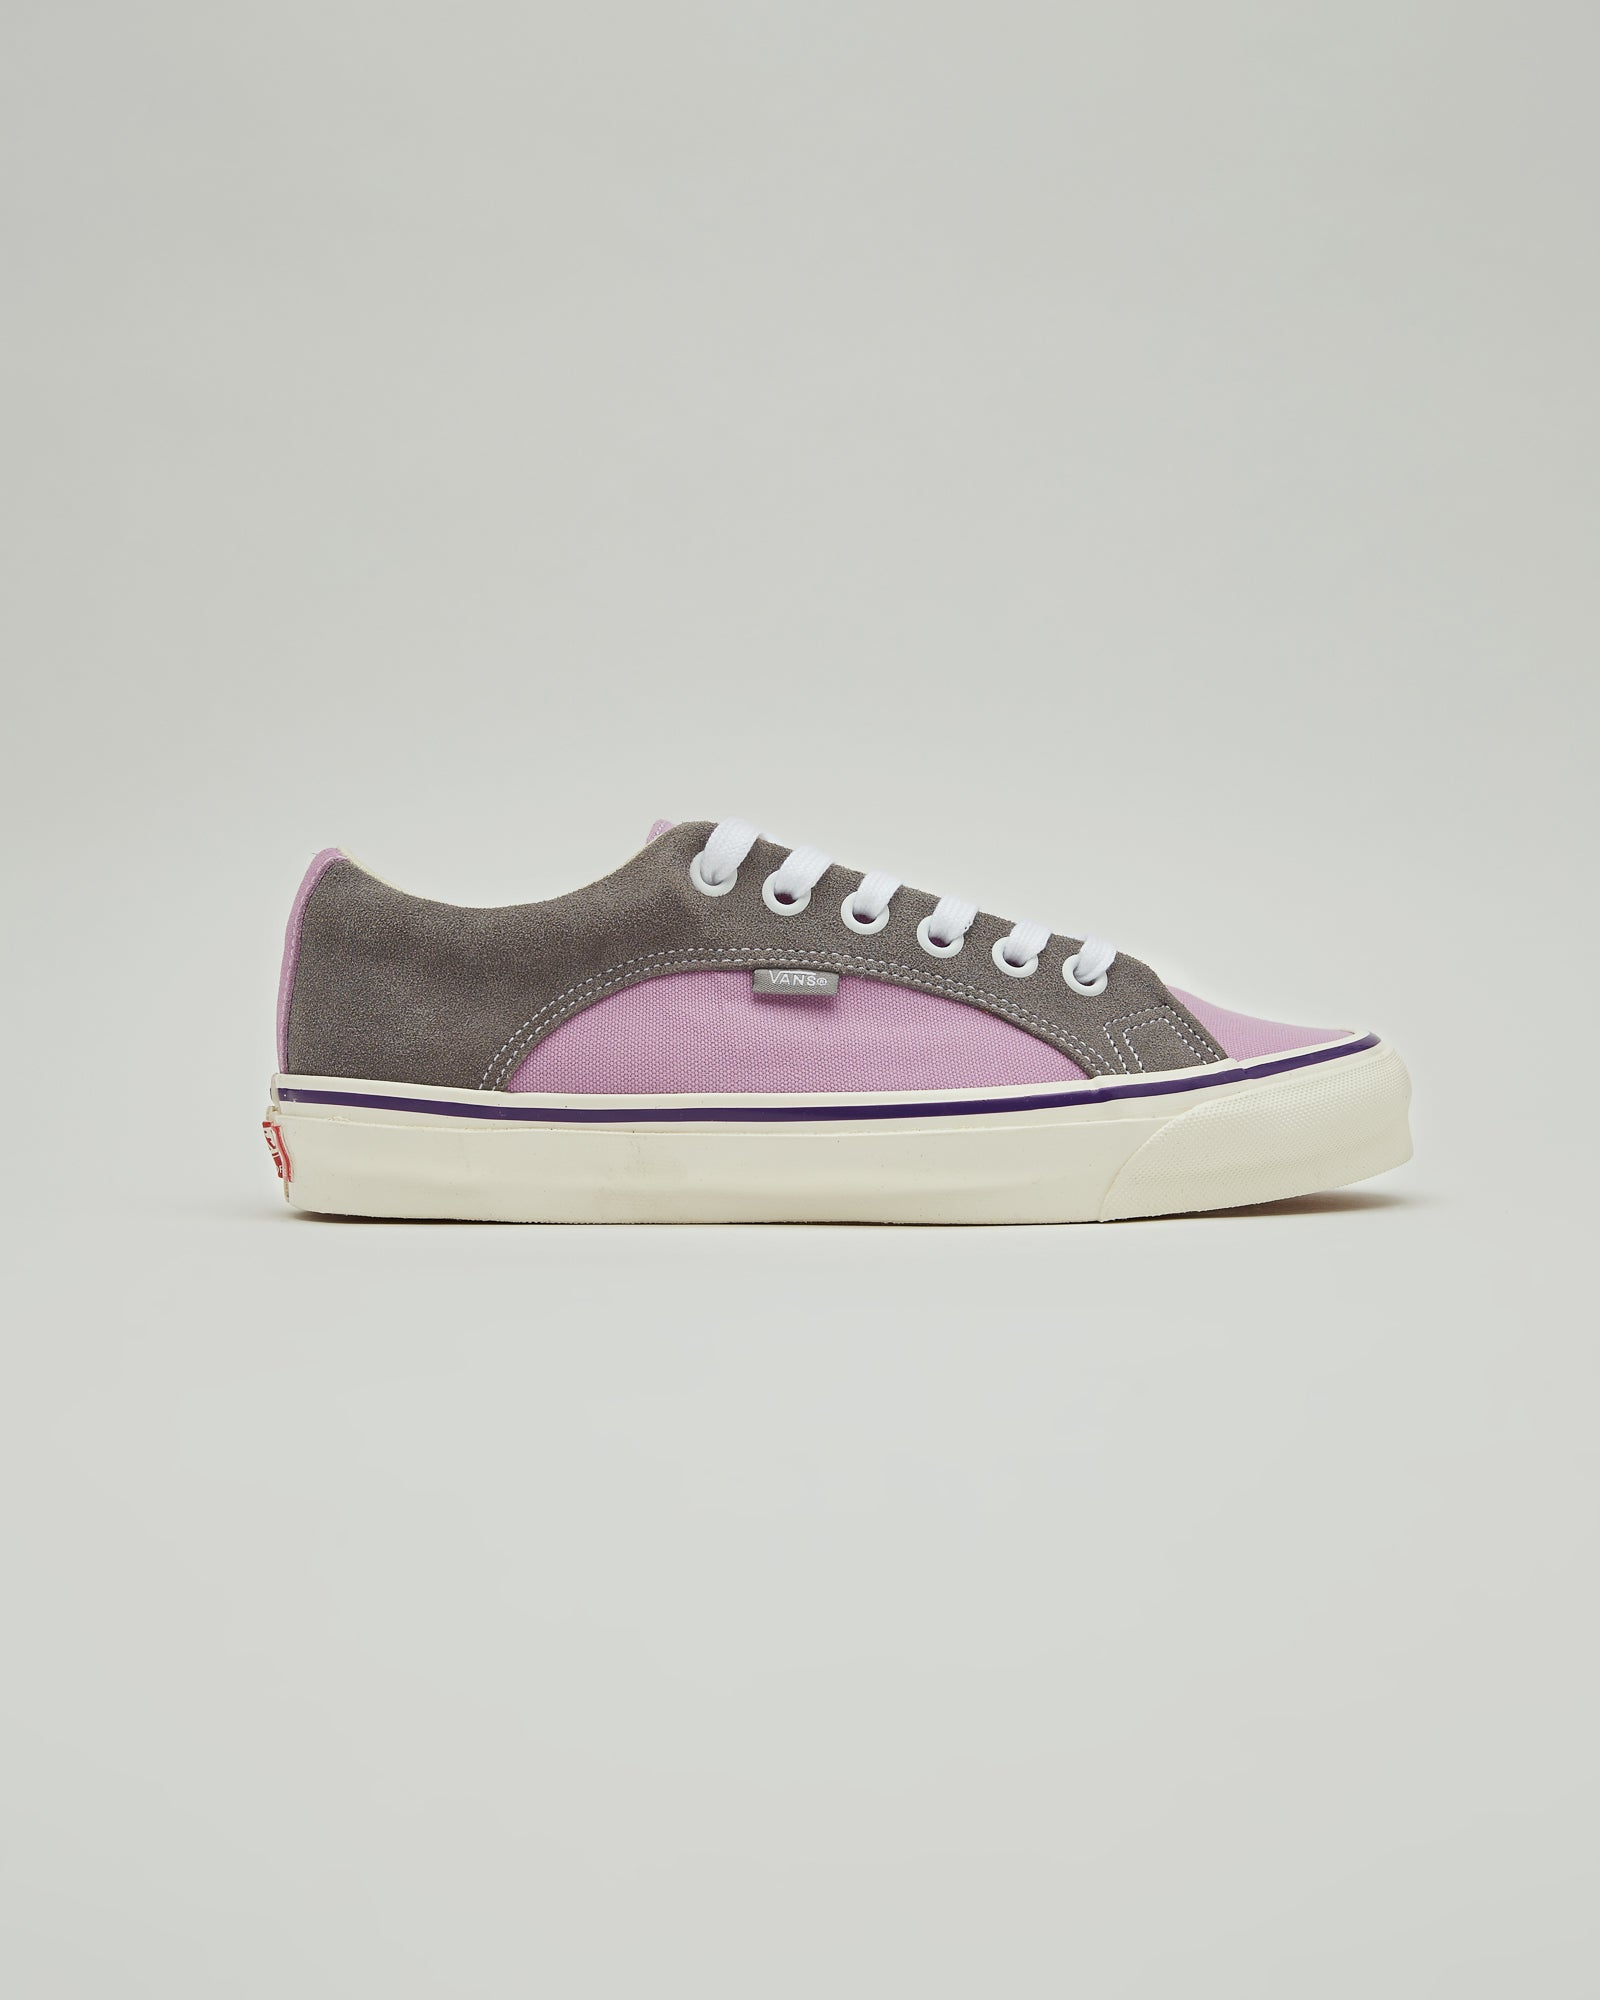 Lampin LX OG Sneakers in Purple and Gray